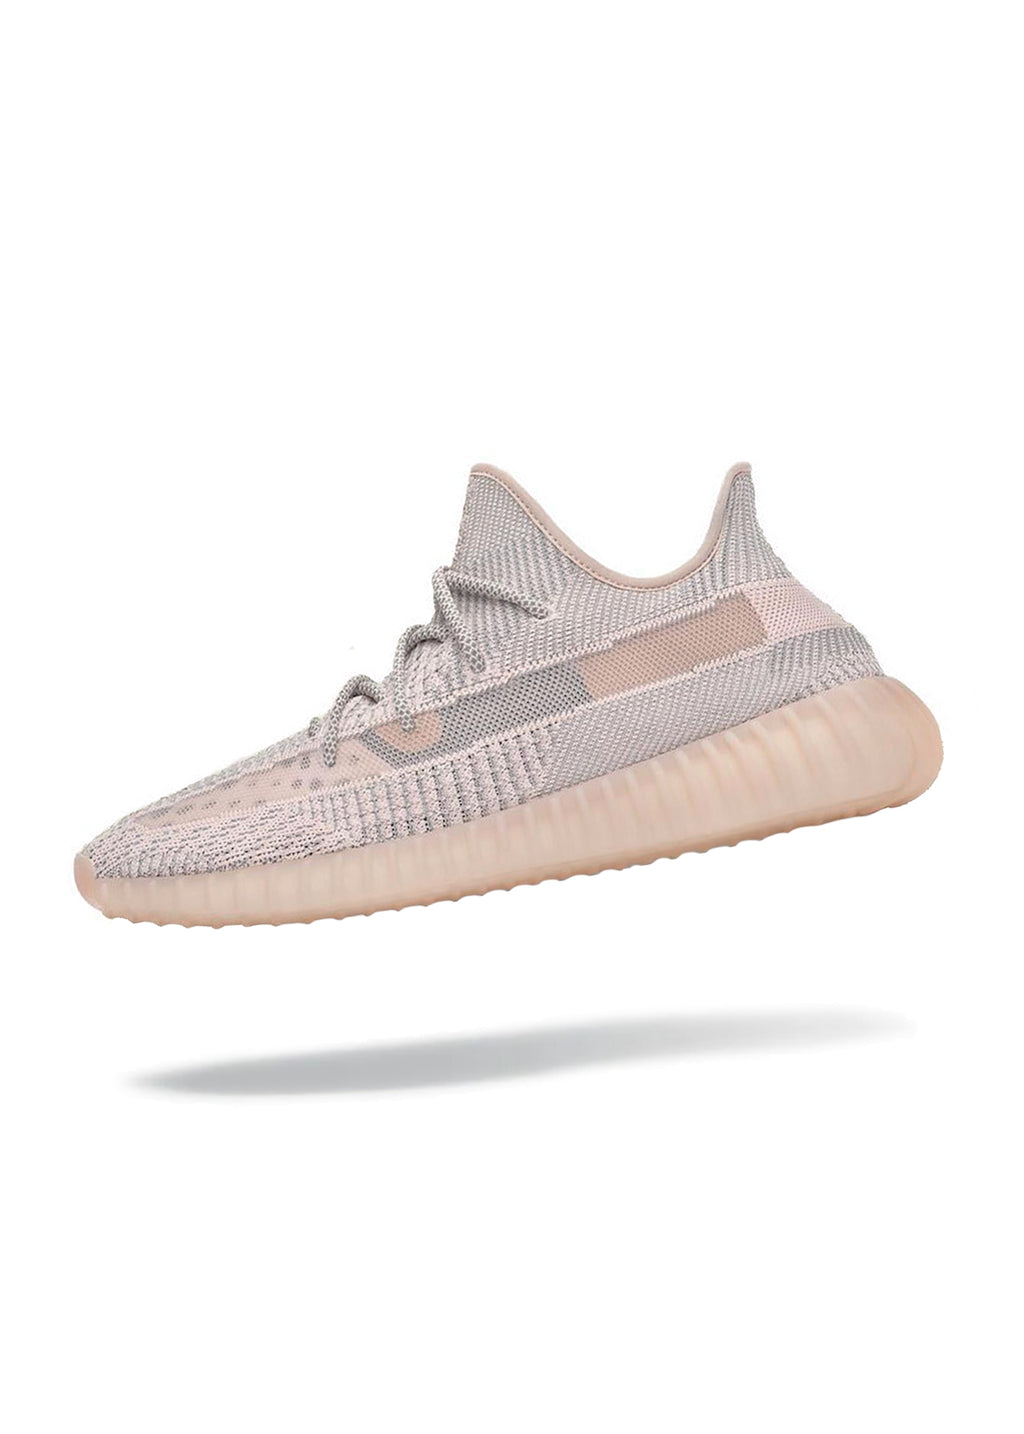 Adidas Yeezy Boost 350 V2 Synth